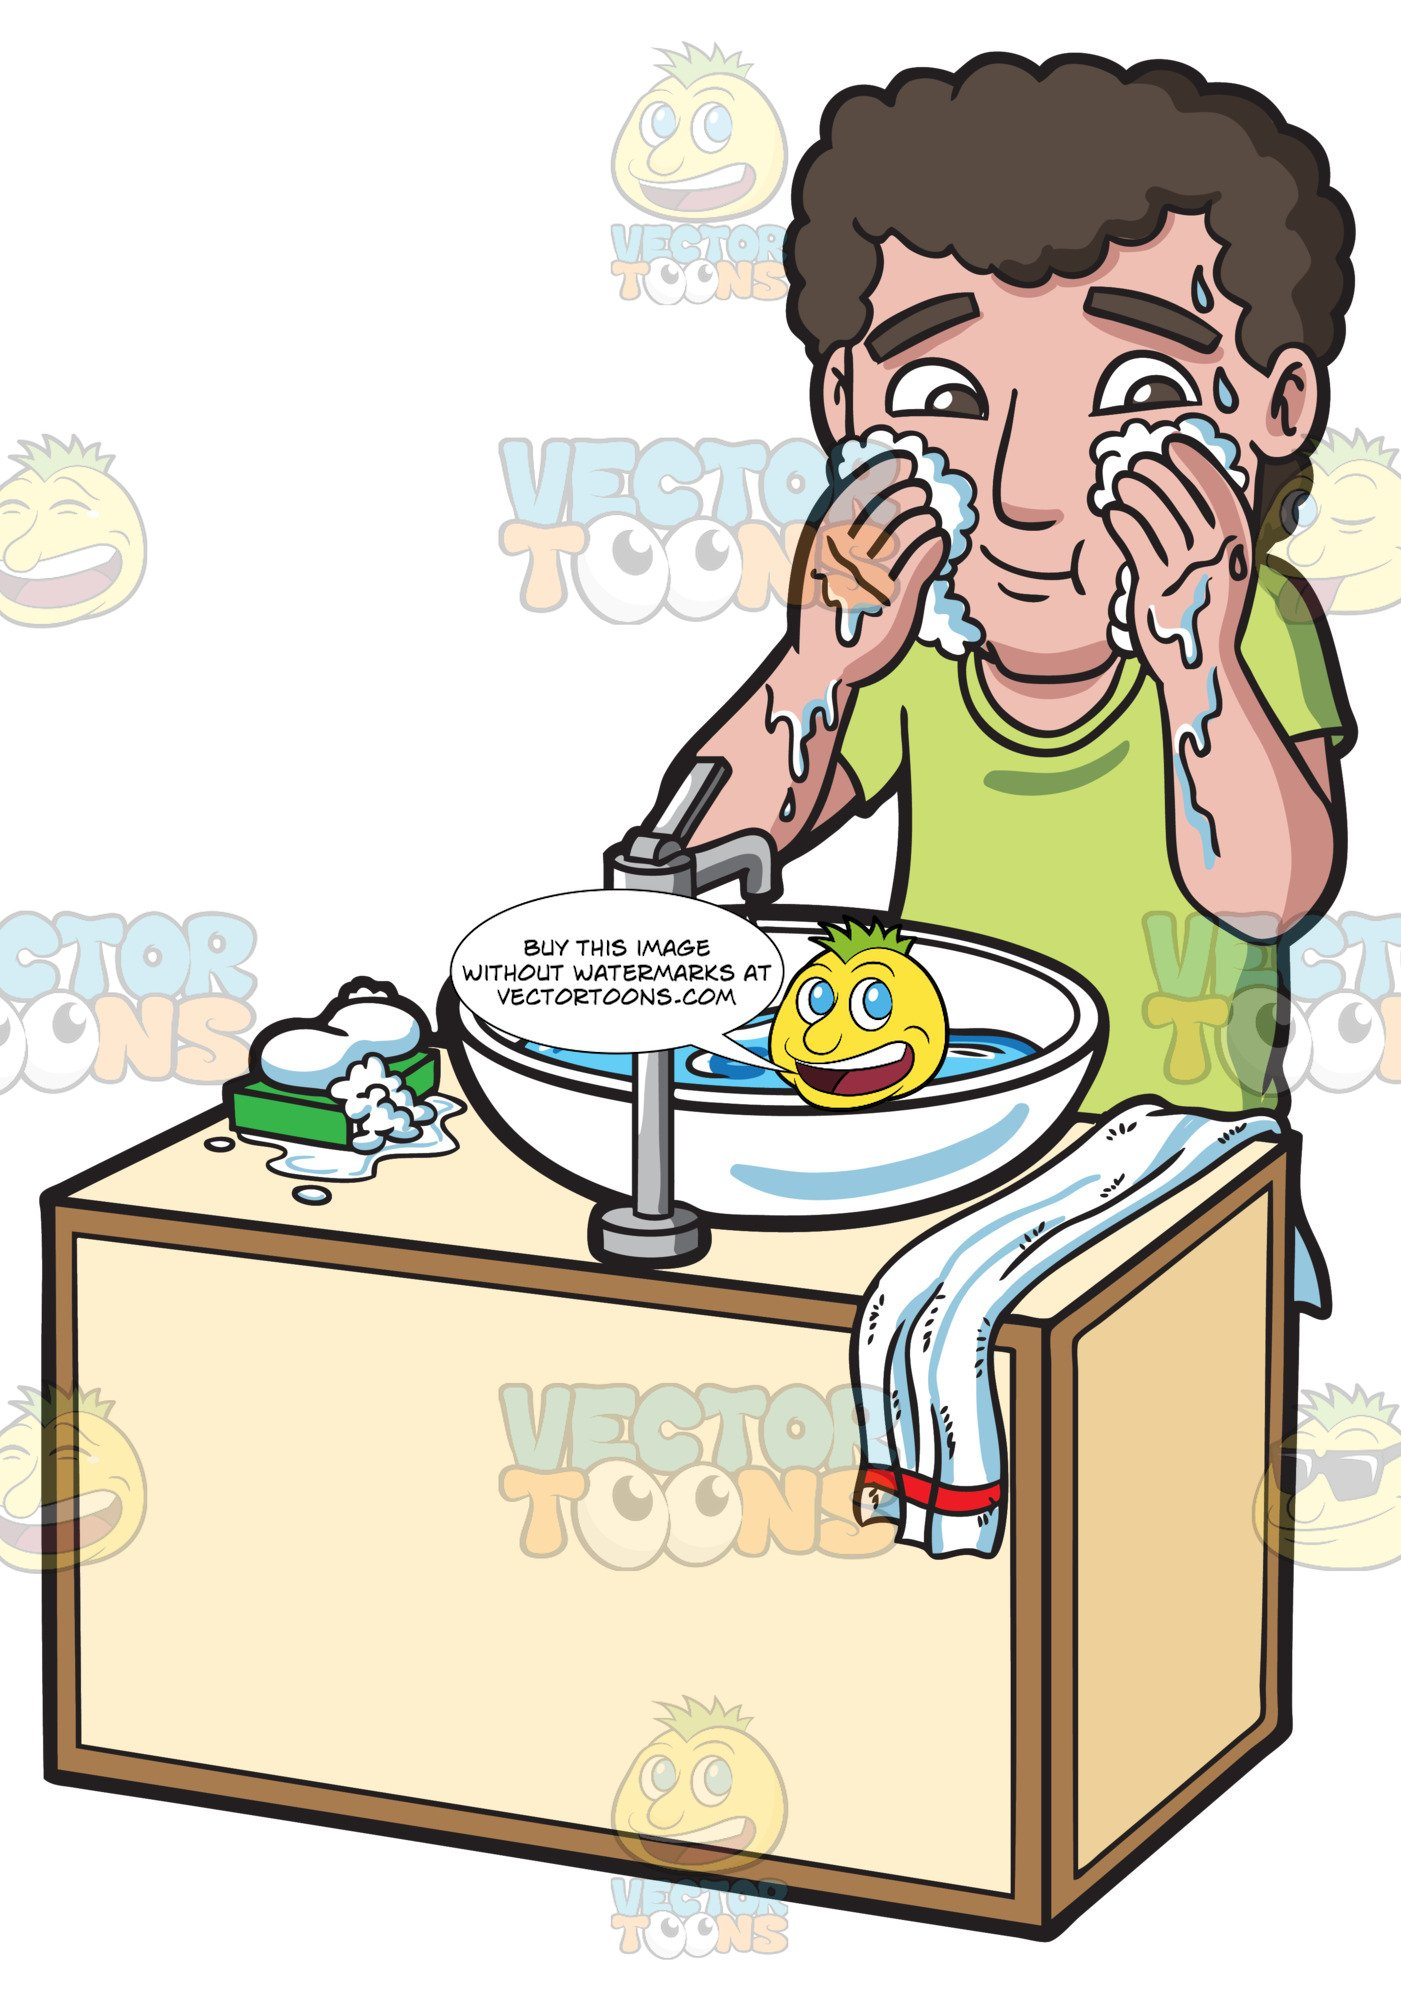 A Man Washing And Cleaning His Face With Soap And Water.